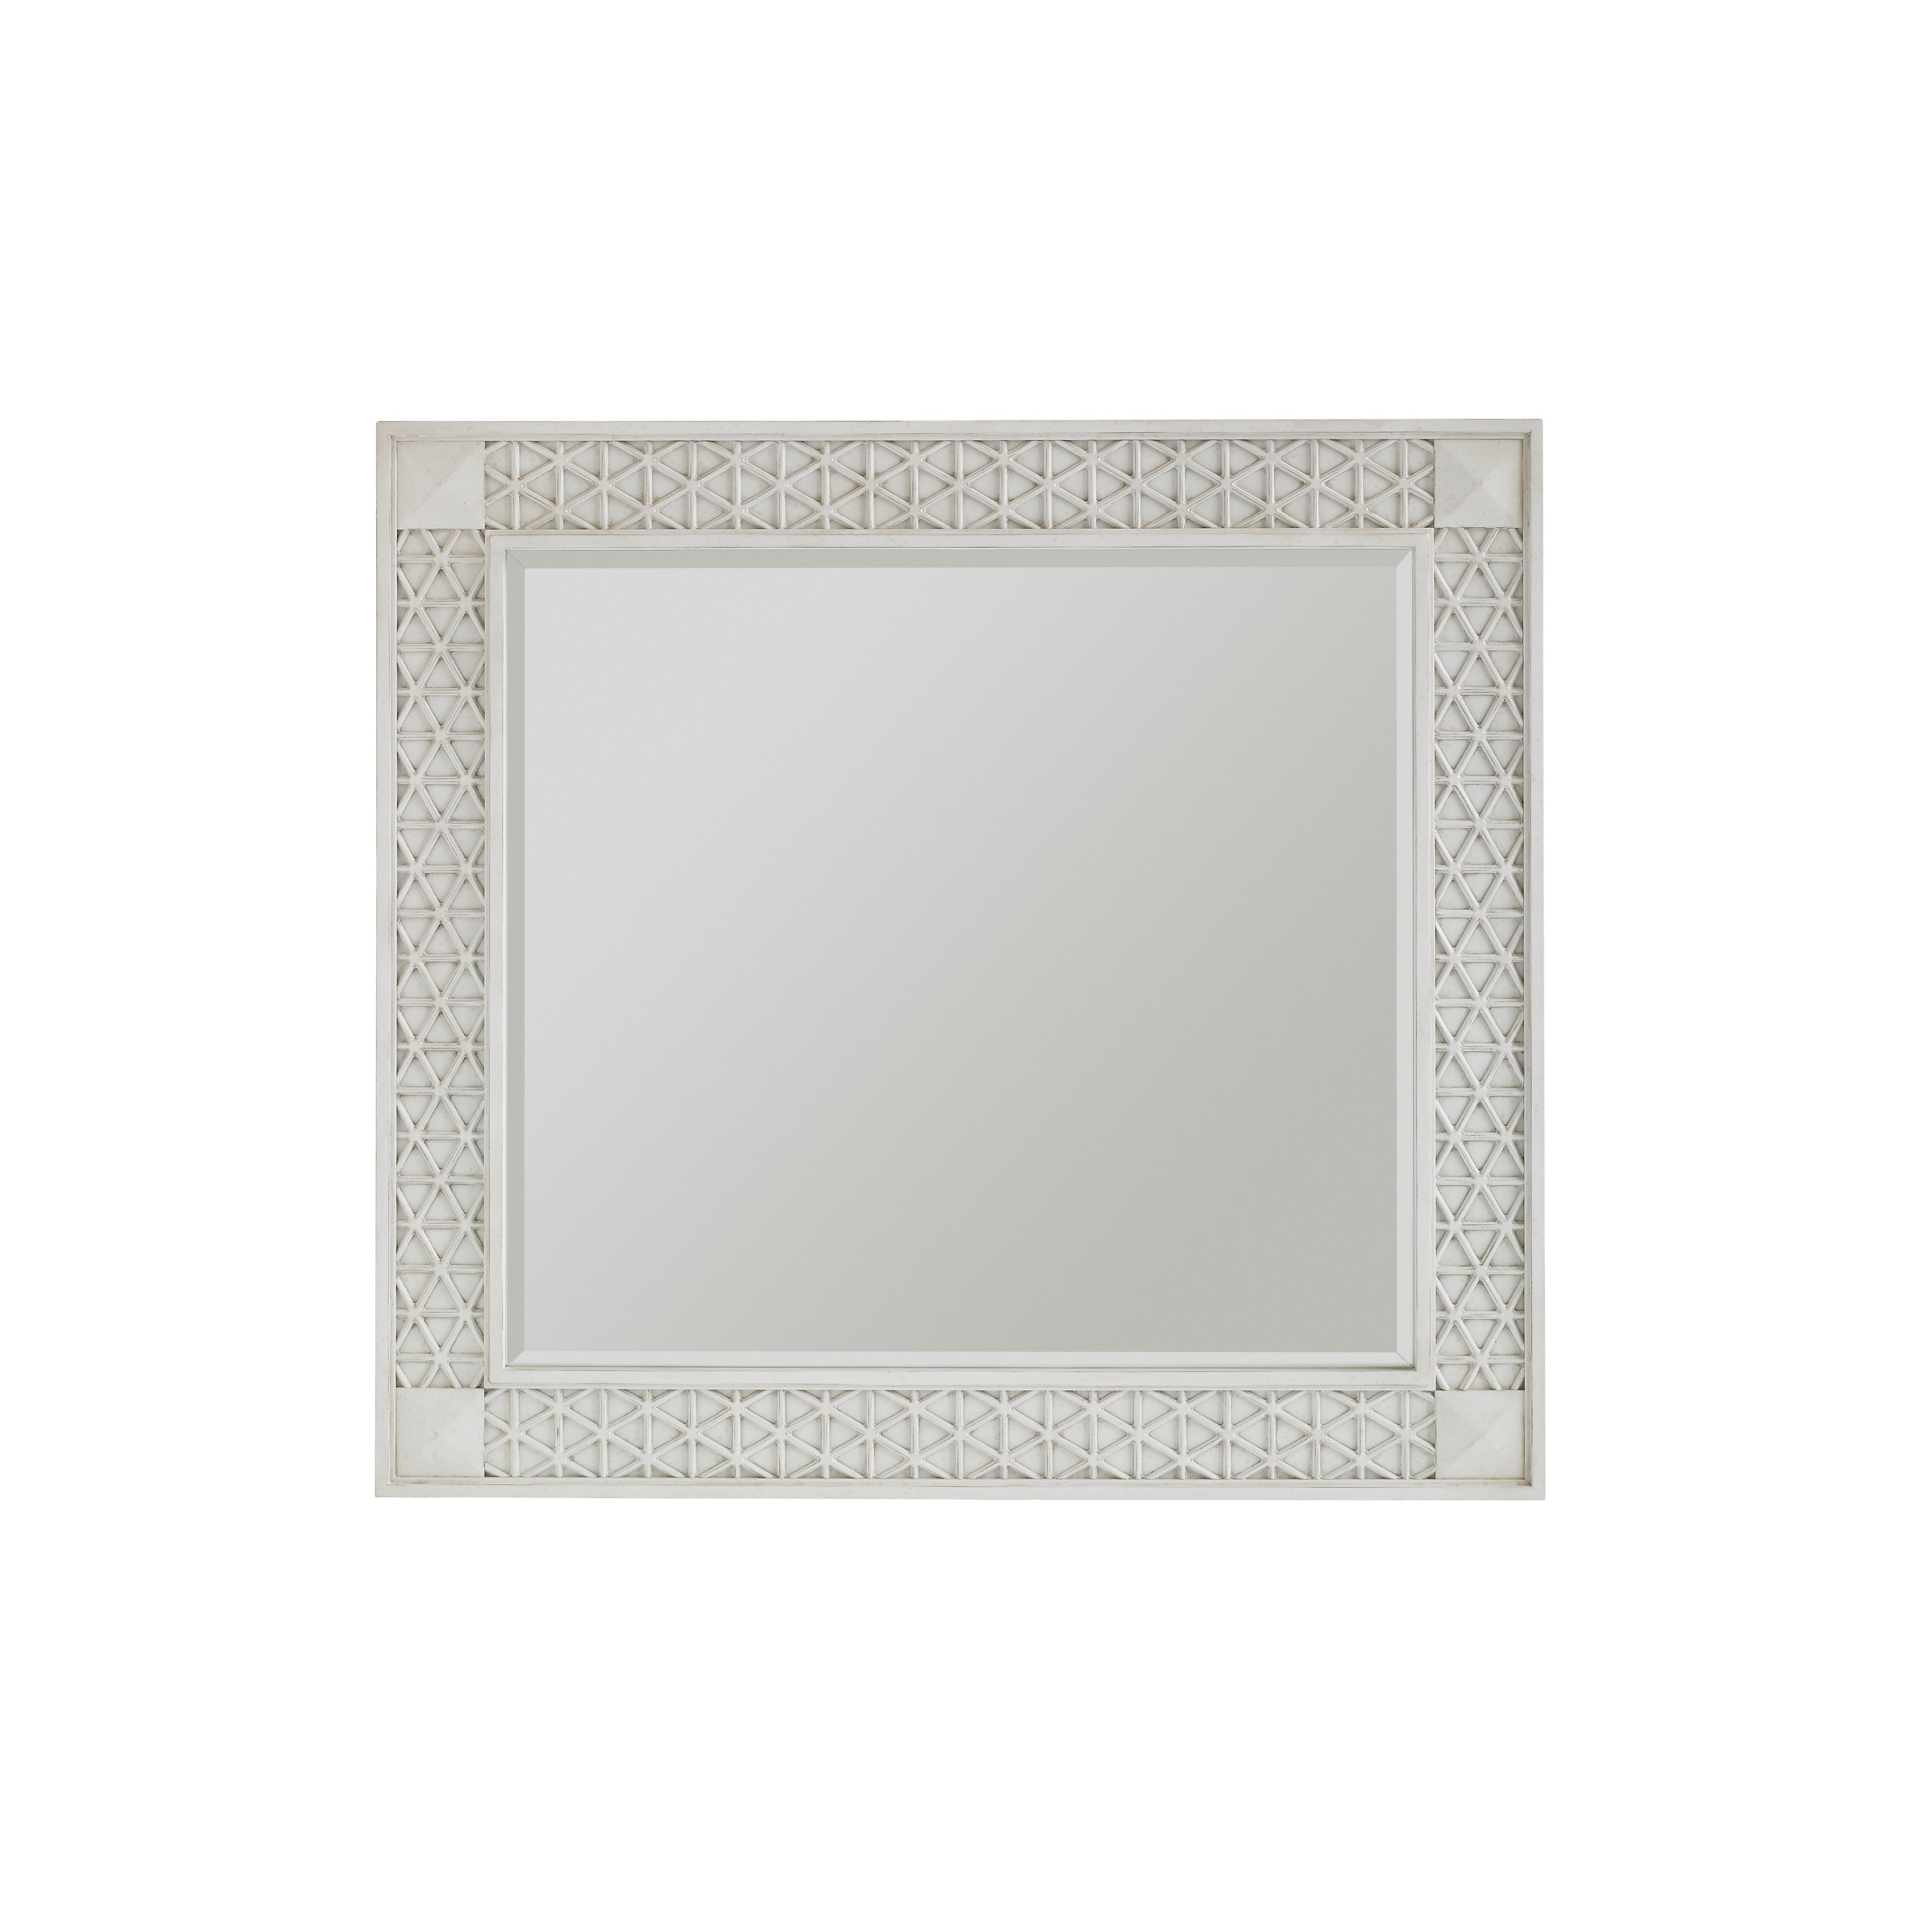 Glover Accent Mirror with regard to Medallion Accent Mirrors (Image 13 of 30)